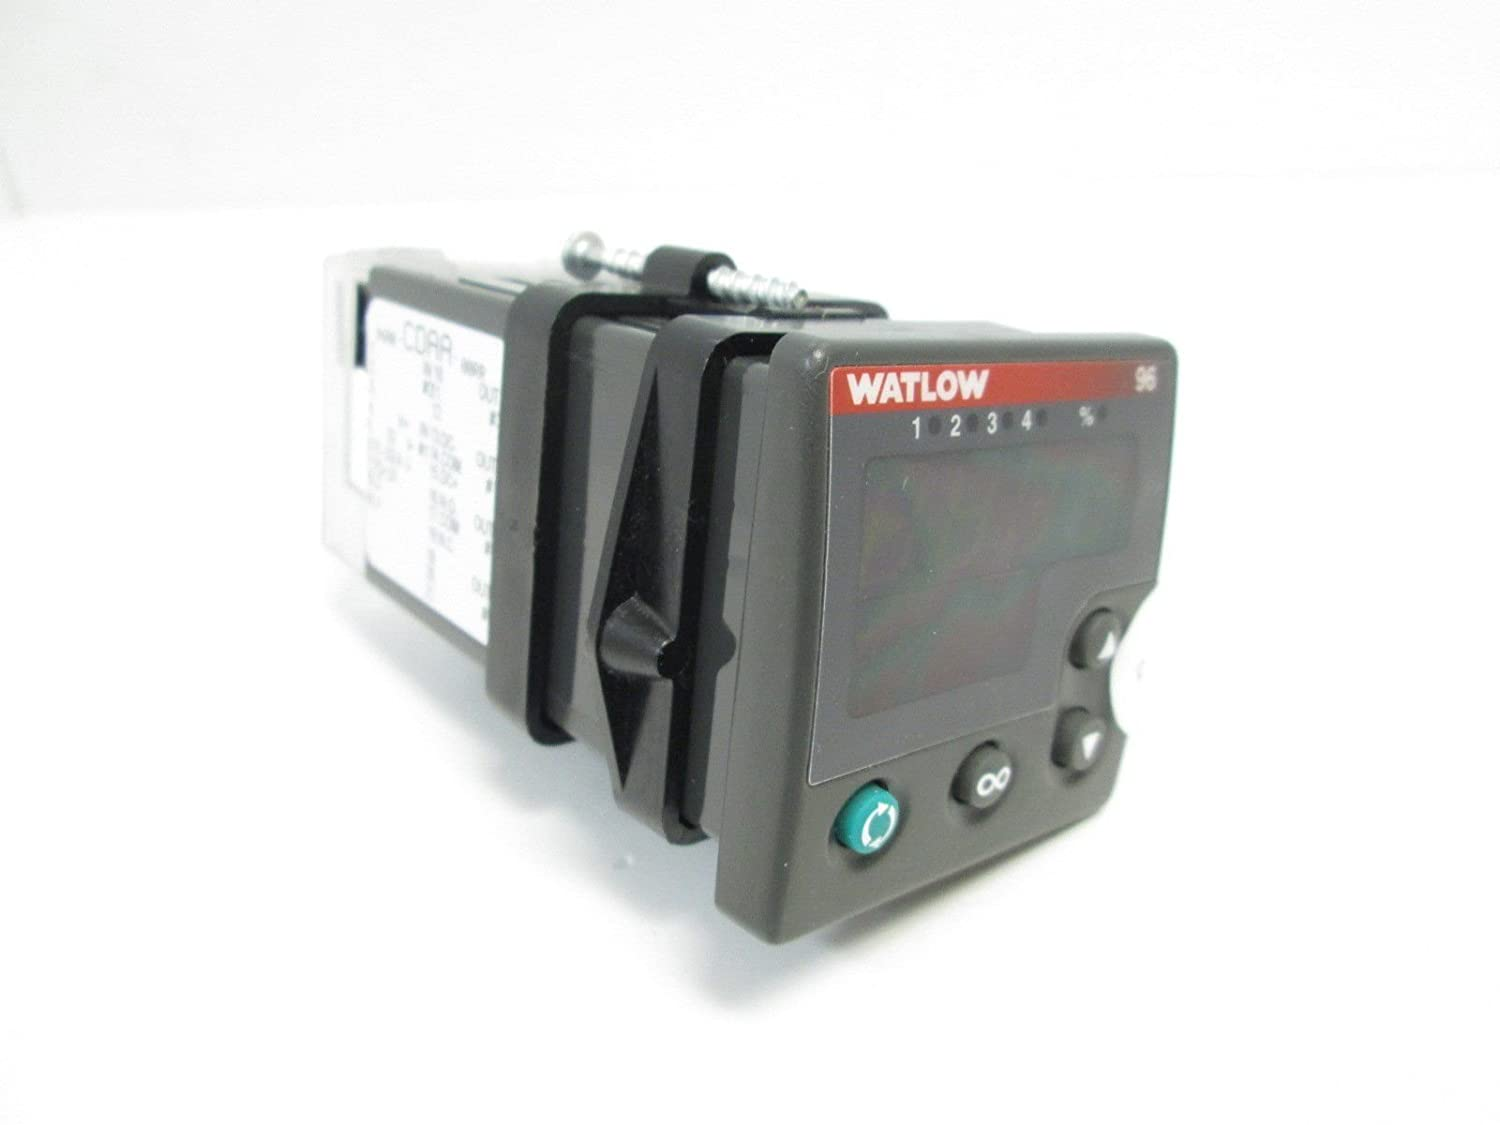 Watlow 96a0 Cdaa 00rr Temperature Controller Switched Dc Open Solid State Relay Collector Industrial Scientific